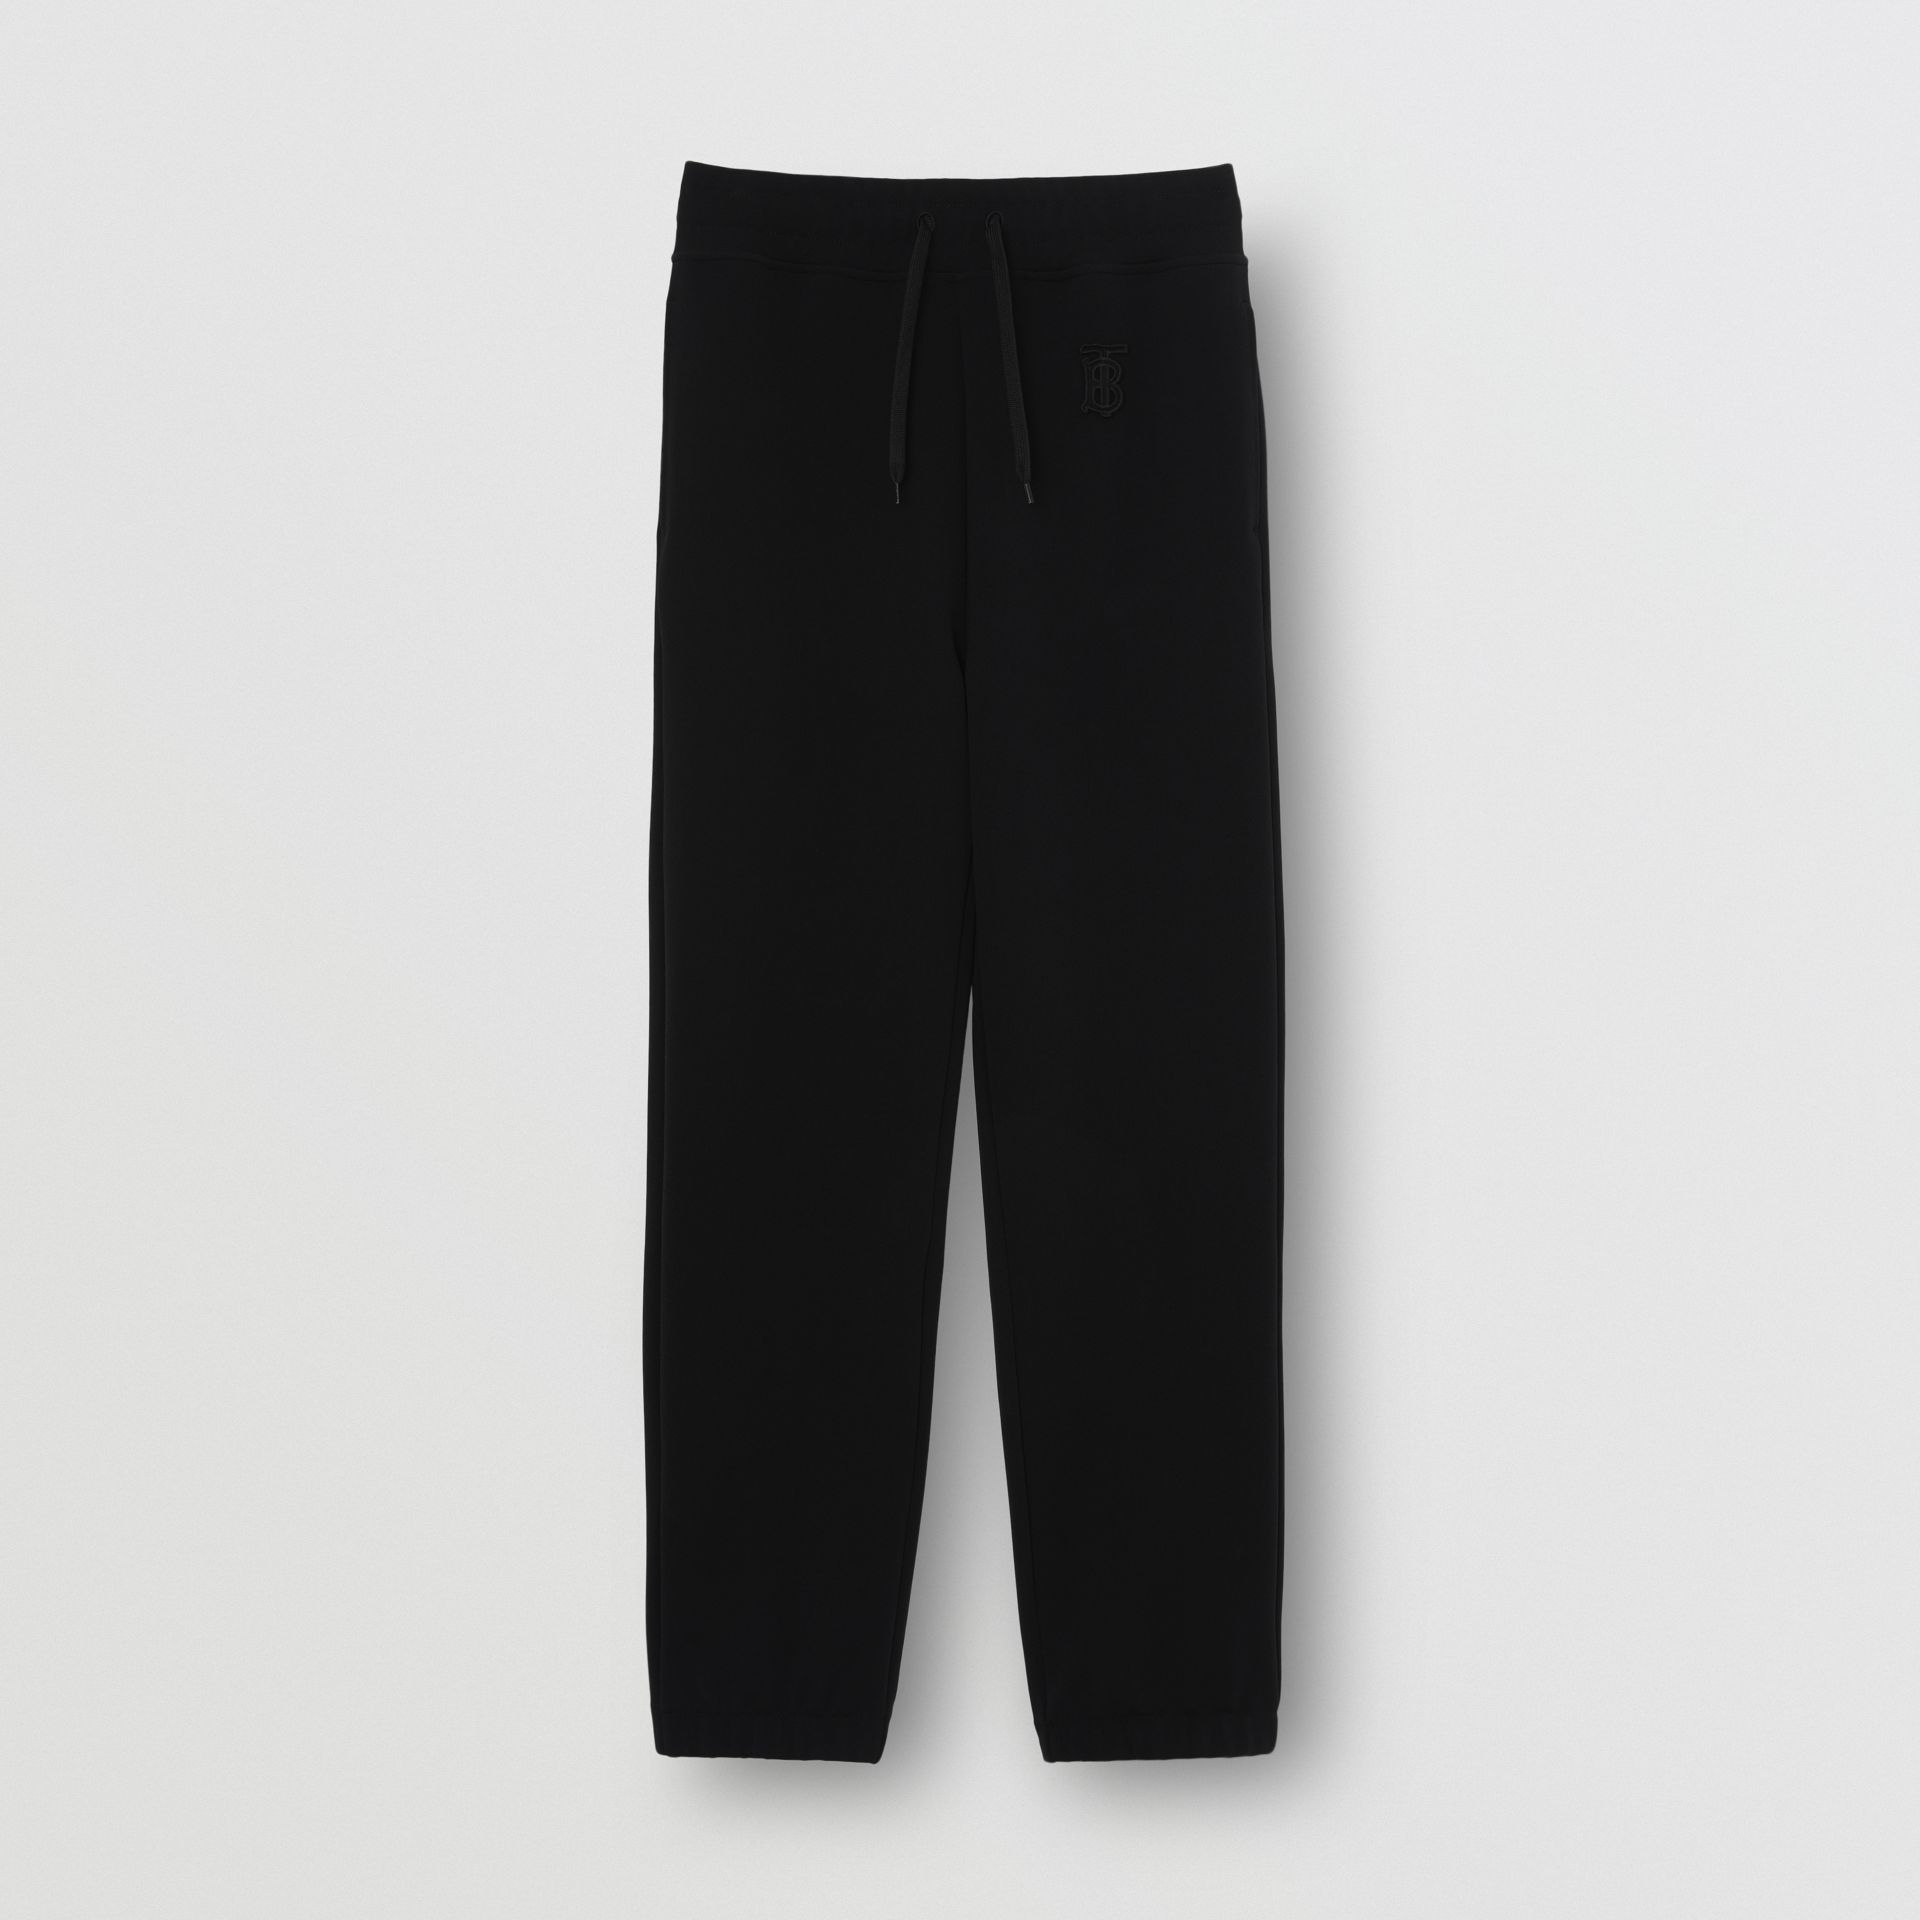 Monogram Motif Technical Trackpants in Black - Women | Burberry United States - gallery image 3